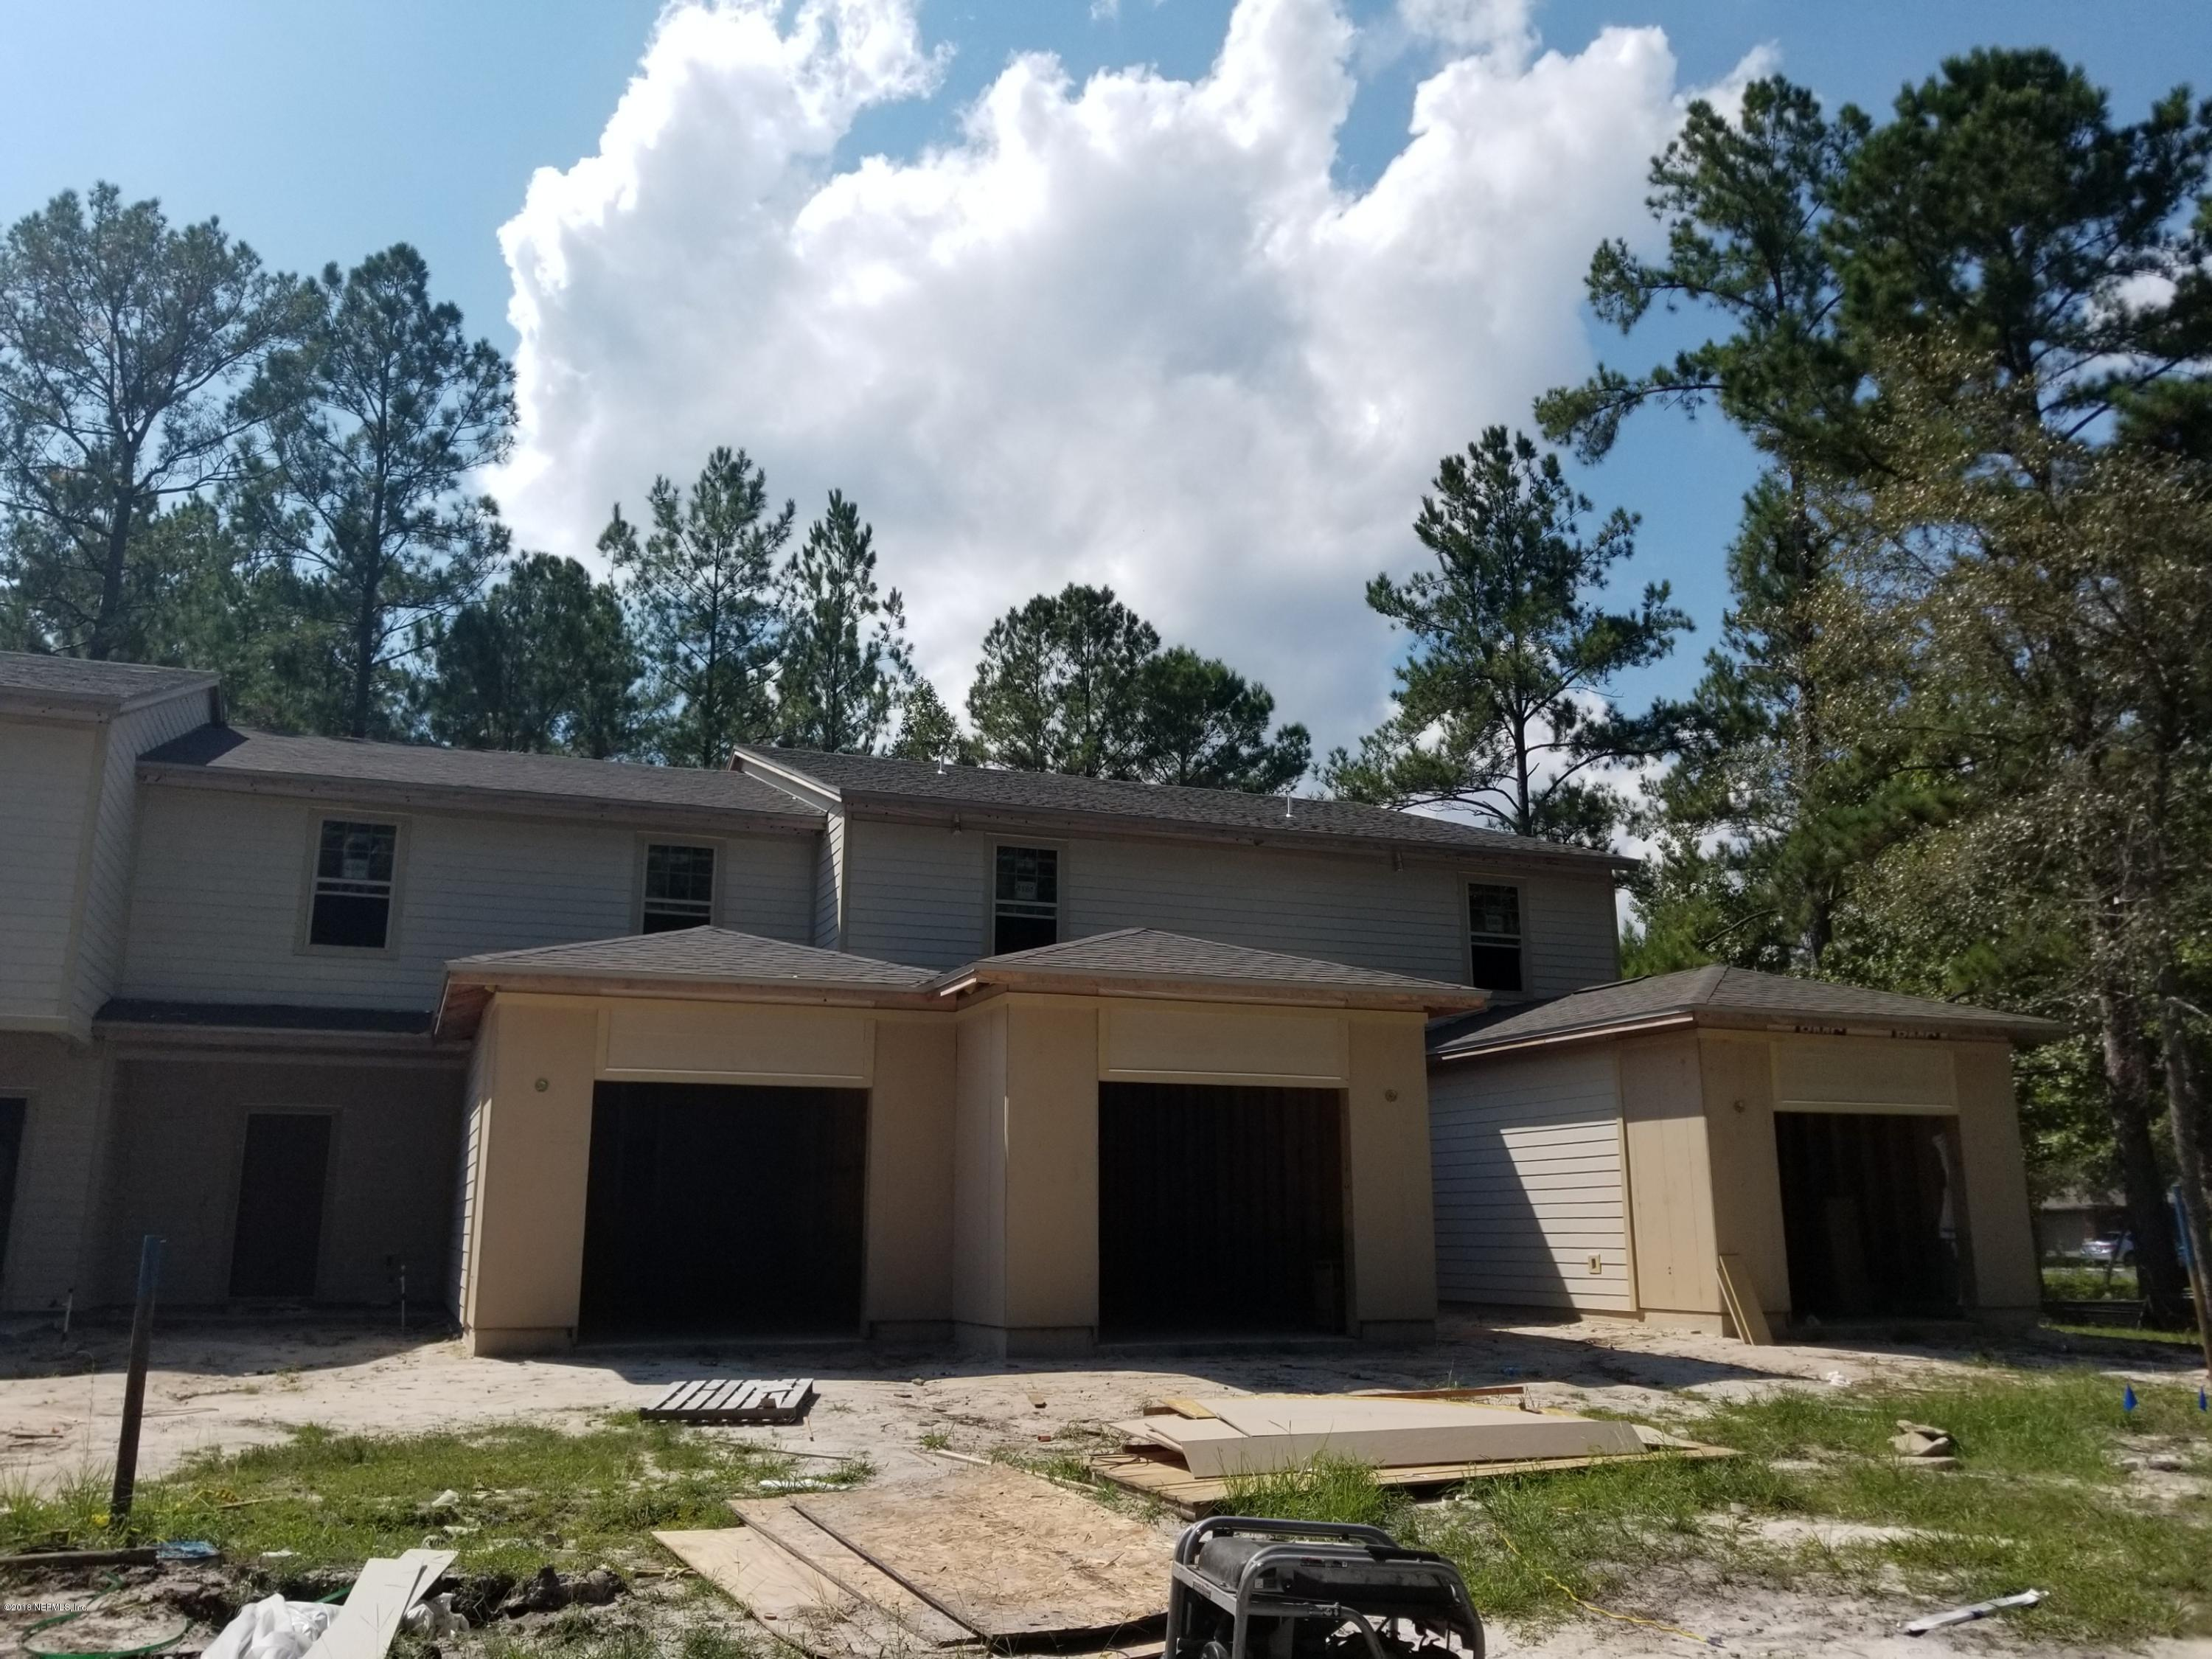 4182 QUIET CREEK, MIDDLEBURG, FLORIDA 32068, 3 Bedrooms Bedrooms, ,2 BathroomsBathrooms,Residential - condos/townhomes,For sale,QUIET CREEK,845498